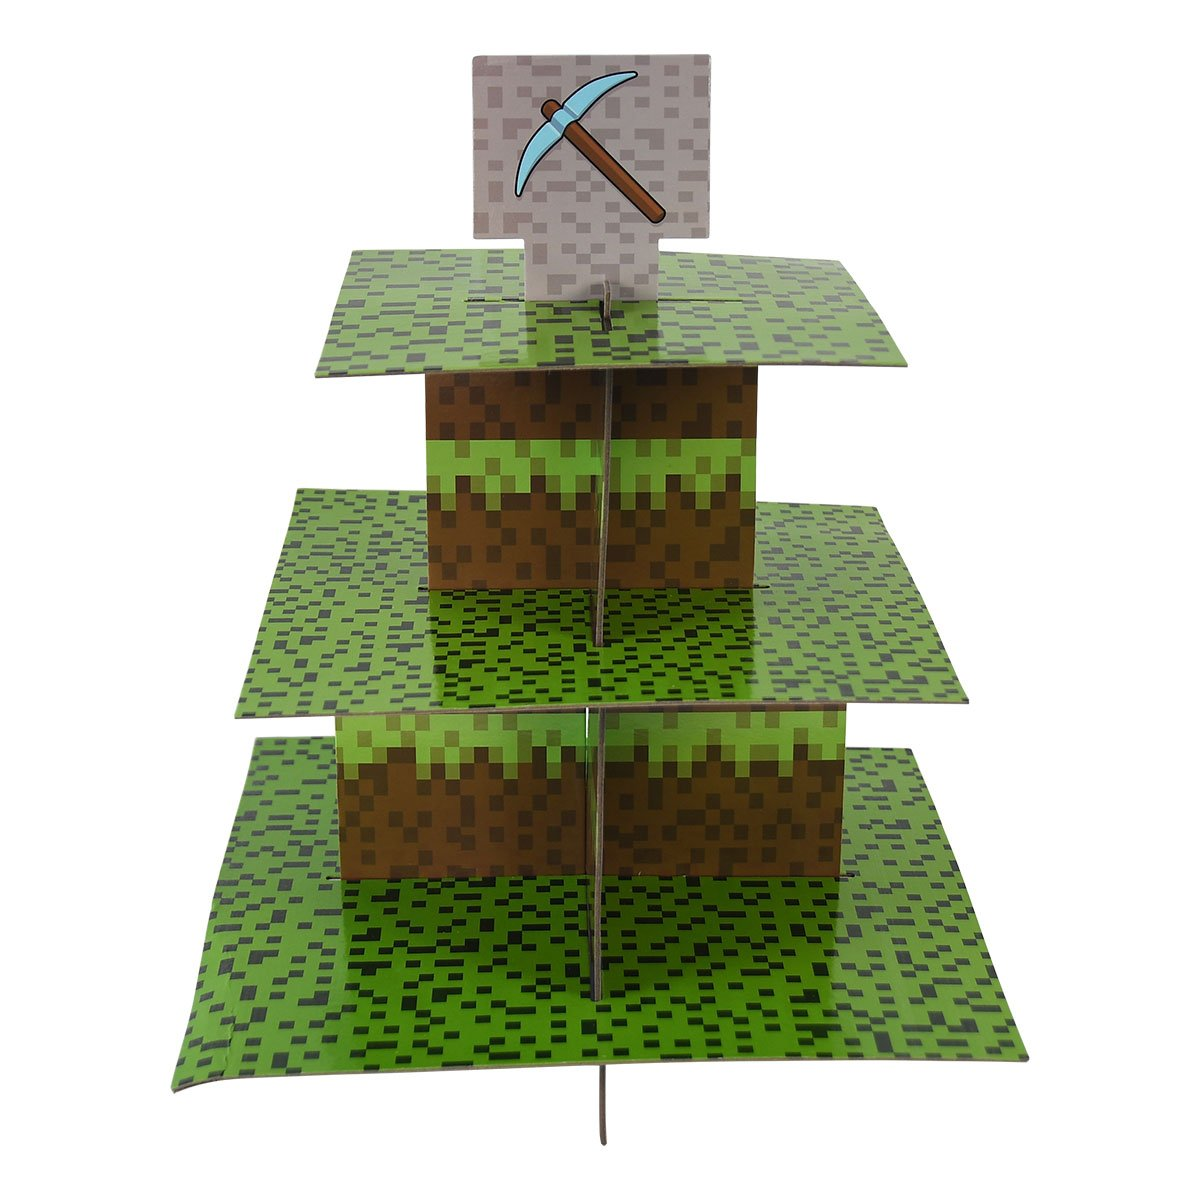 Blue Orchards Mining Fun Cupcake Stand & Pick Kit, Pixel Decorations, Minecraft Inspired Parties, Birthdays, Party Supplies, Cake Decorations, 3 Tier Cardboard Cupcake Stand by Blue Orchards